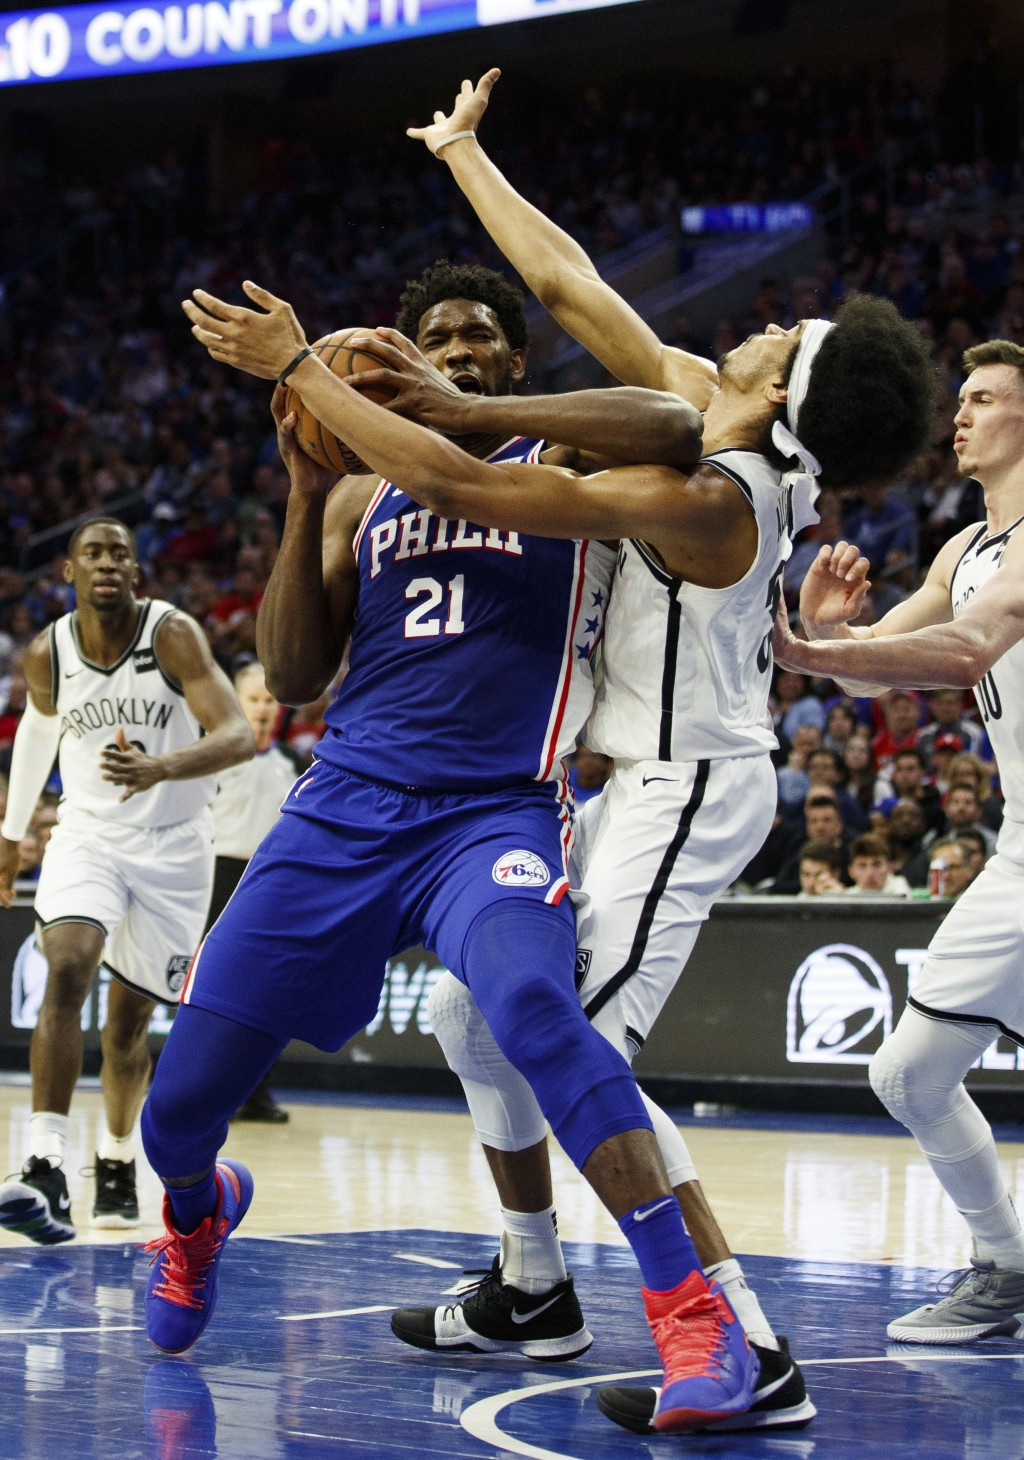 Philadelphia 76ers' Joel Embiid, left, of Cameroon, with the flaguant 1 foul on Brooklyn Nets' Jarrett Allen, right, as he was going for the shot duri...